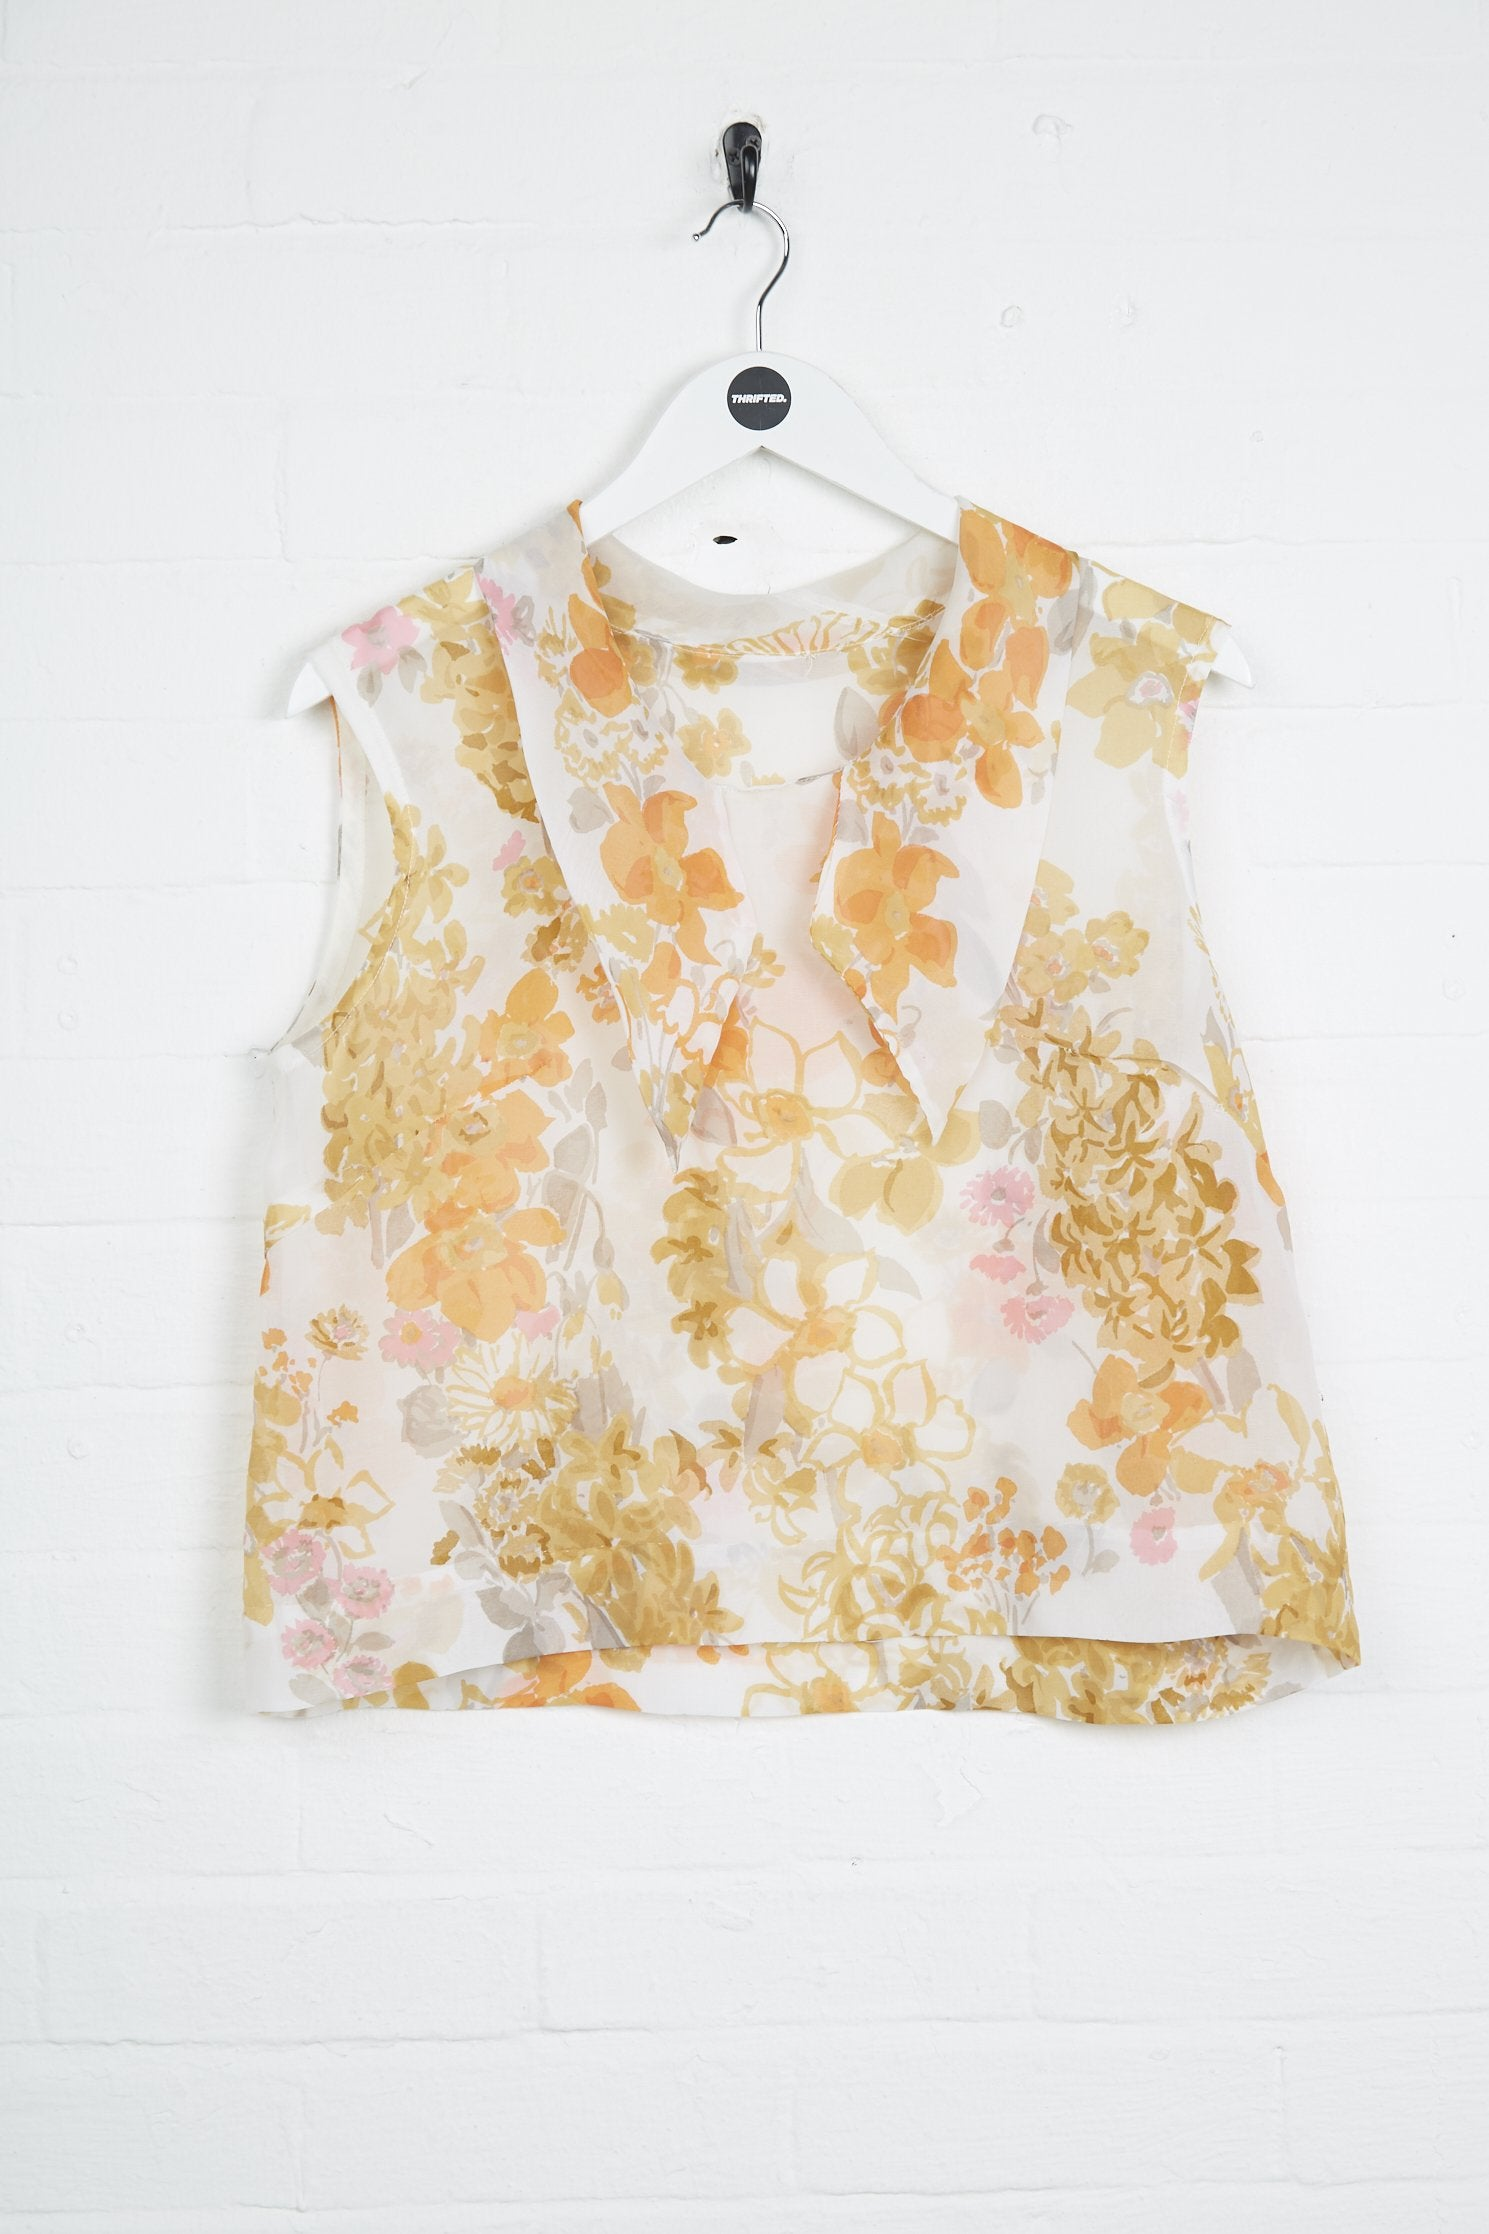 Vintage Top - Large Floral Viscose - Thrifted.com